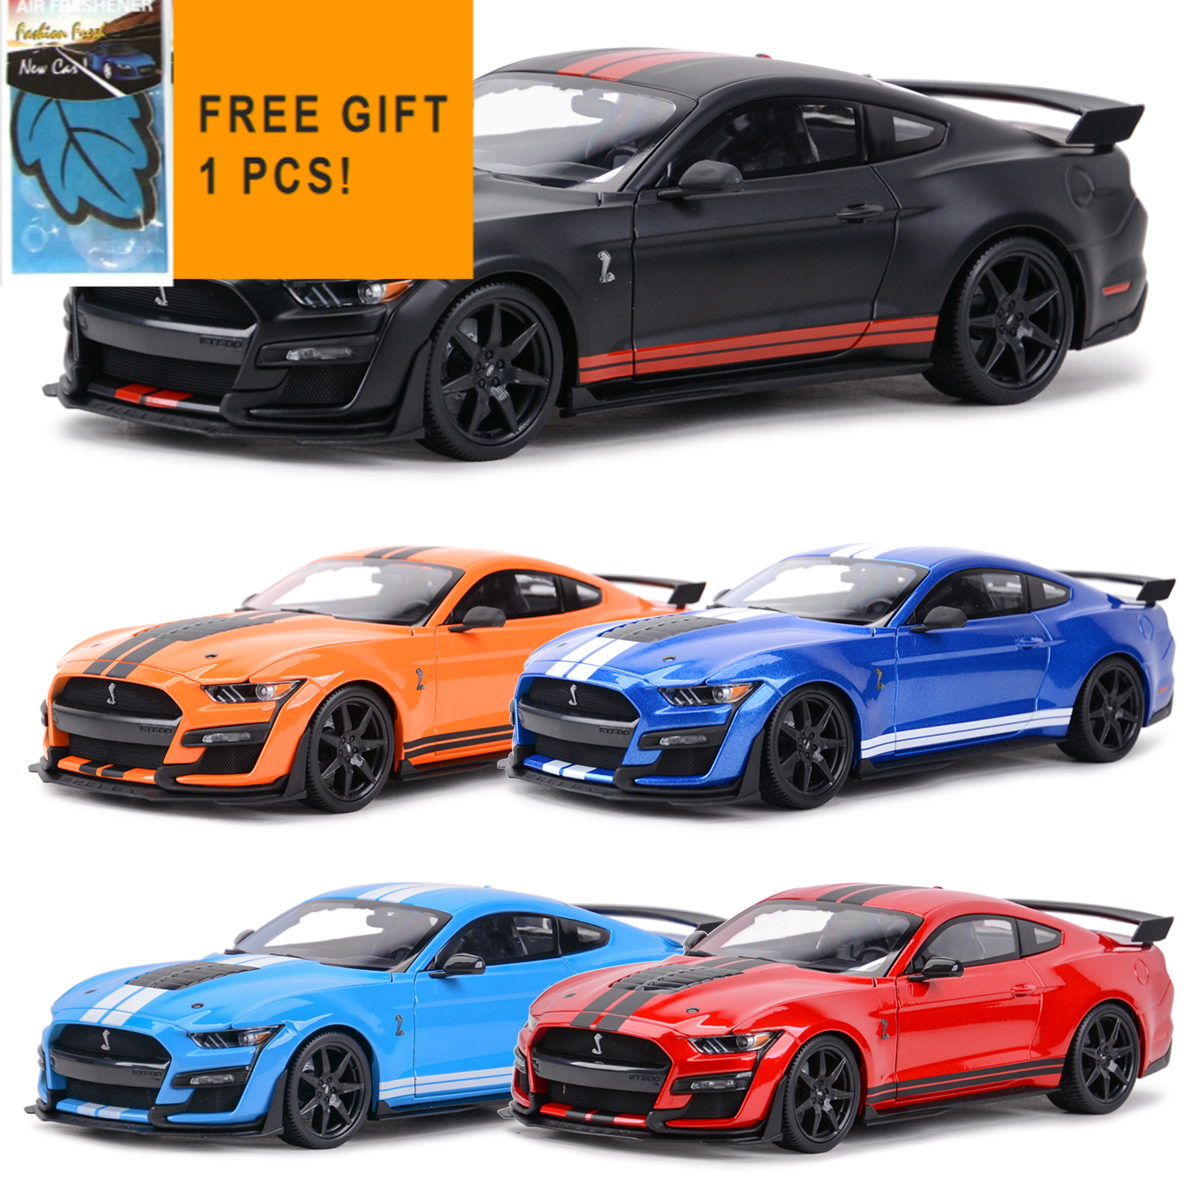 Maisto 1:18 2020 Mustang Shelby GT500 Ford Sports Car Static Die Cast Vehicles Collectible Model Car Toys